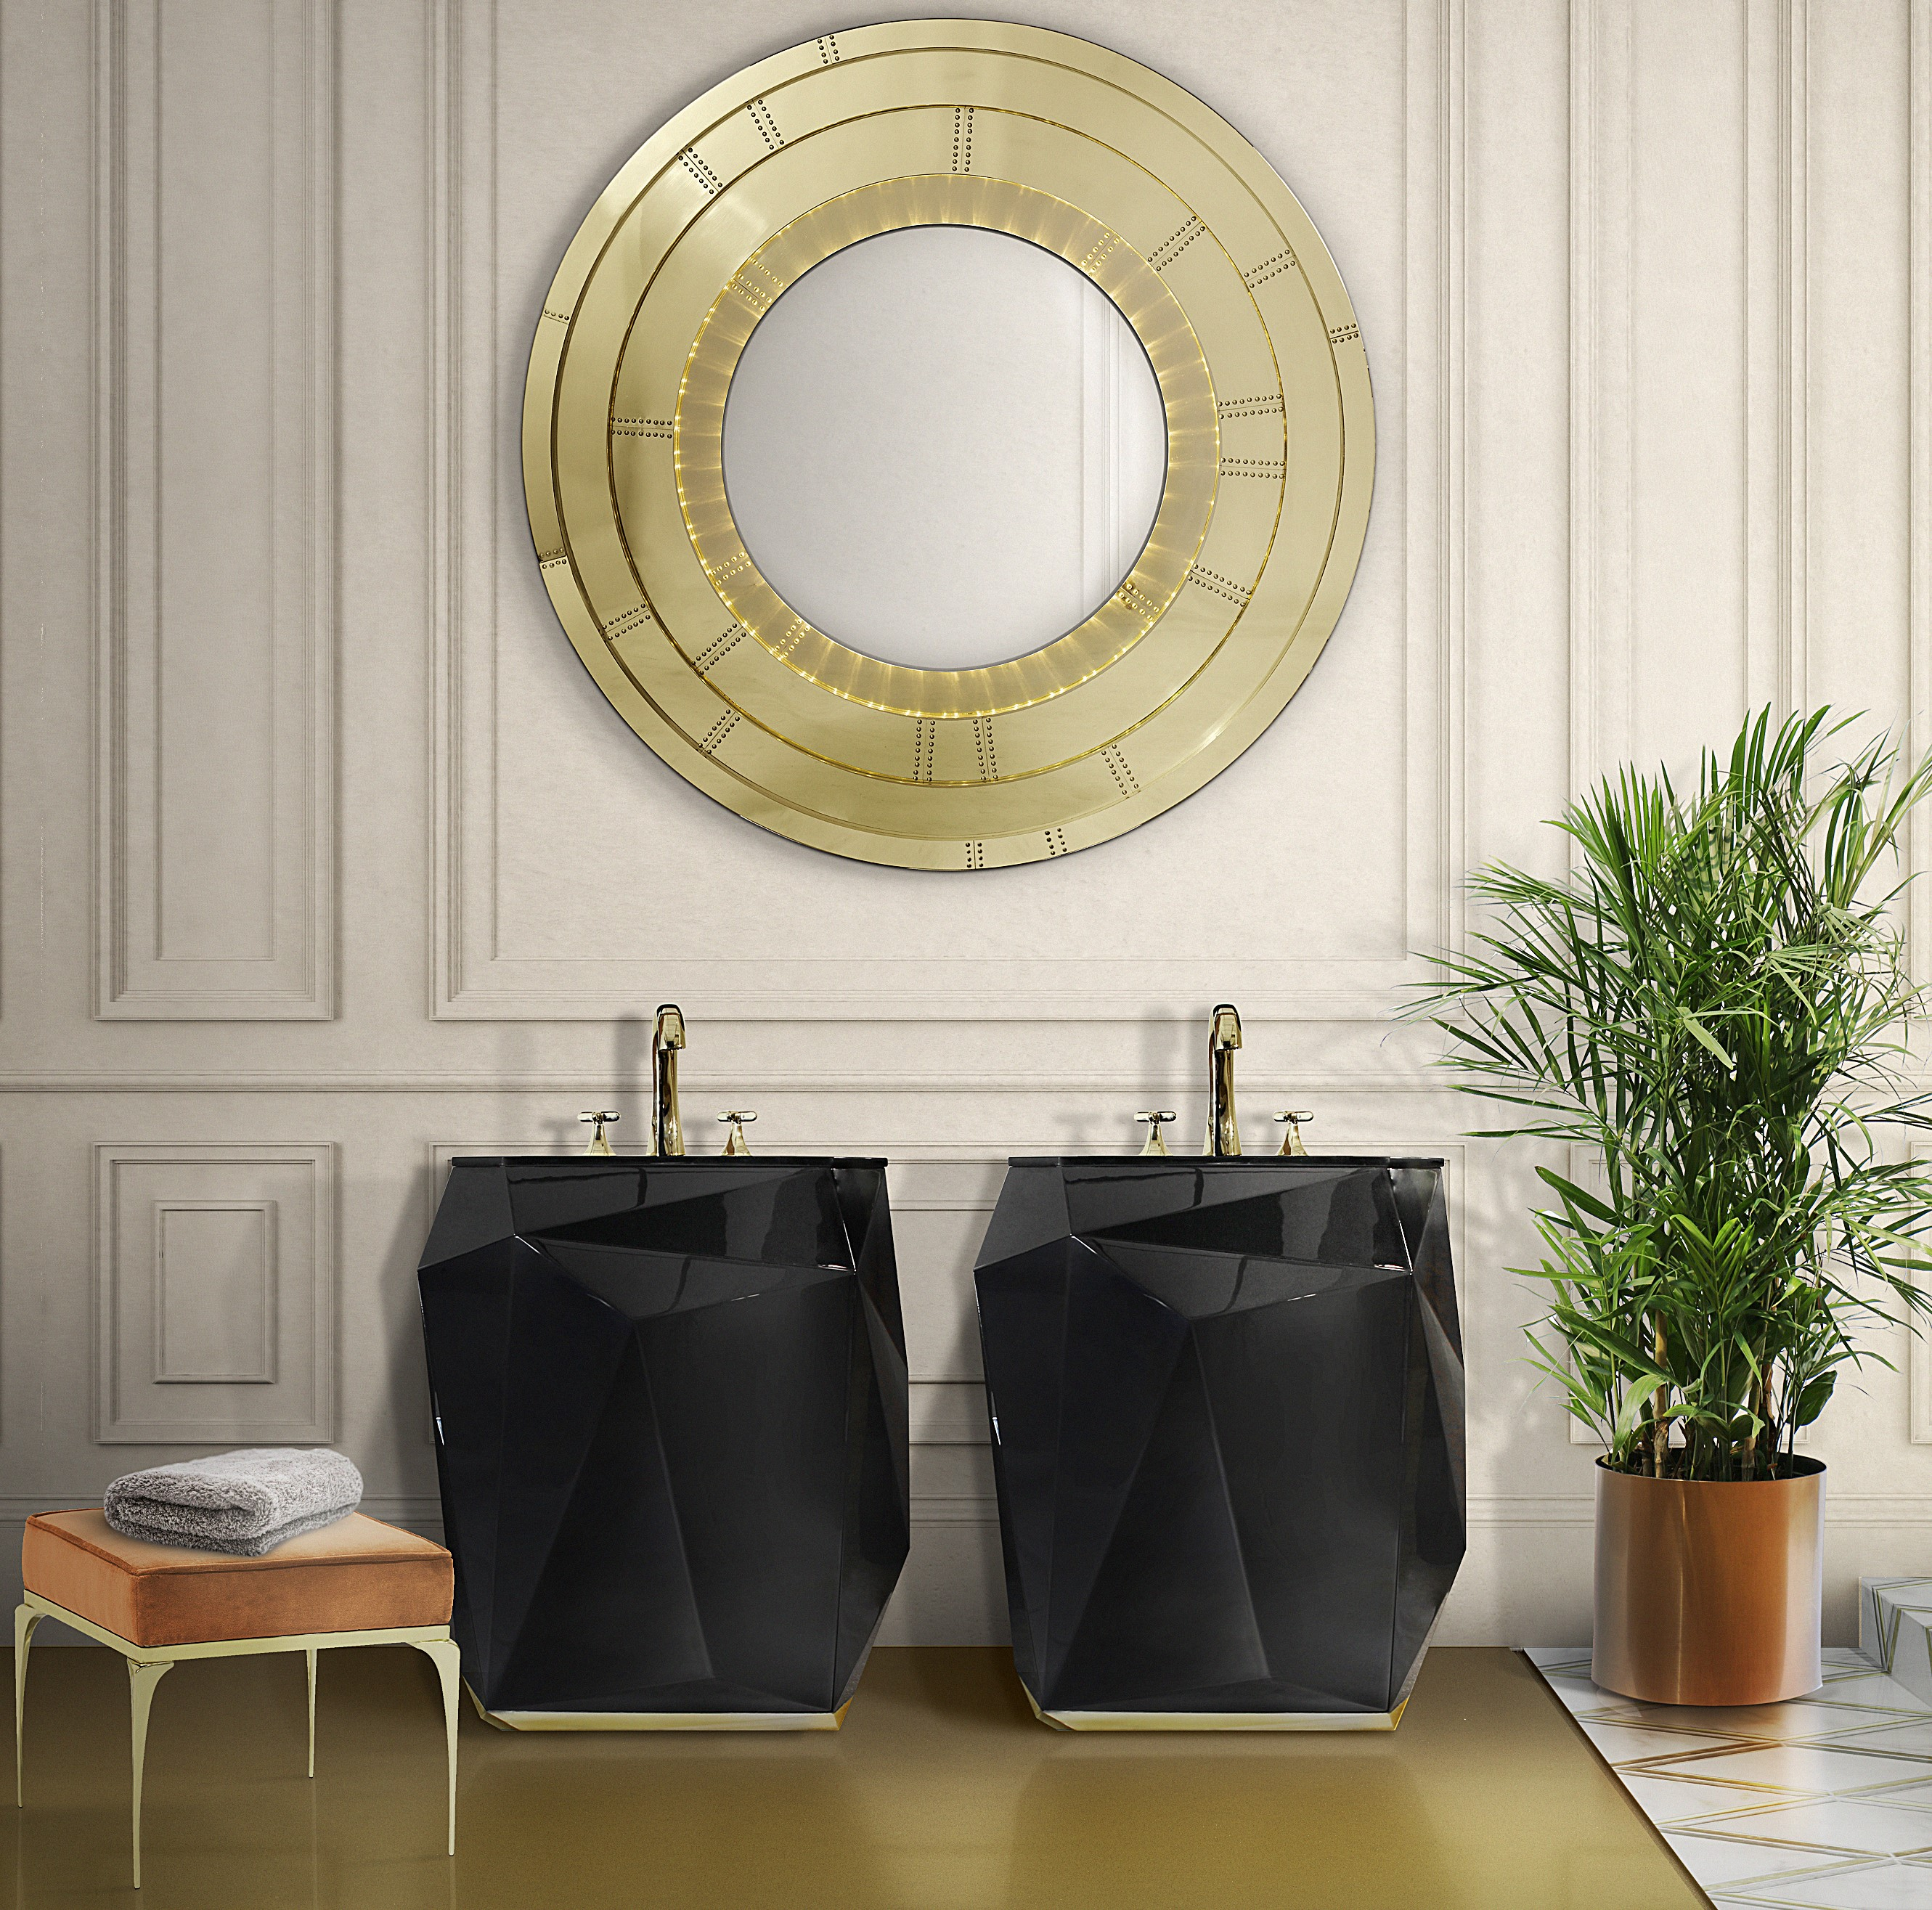 Design Inspiration,diamond collection,bathroom, bathtub, design,bathroom furniture design inspiration Design Inspiration: The Diamond Collection 25 diamond freestand blaze mirror HR 1